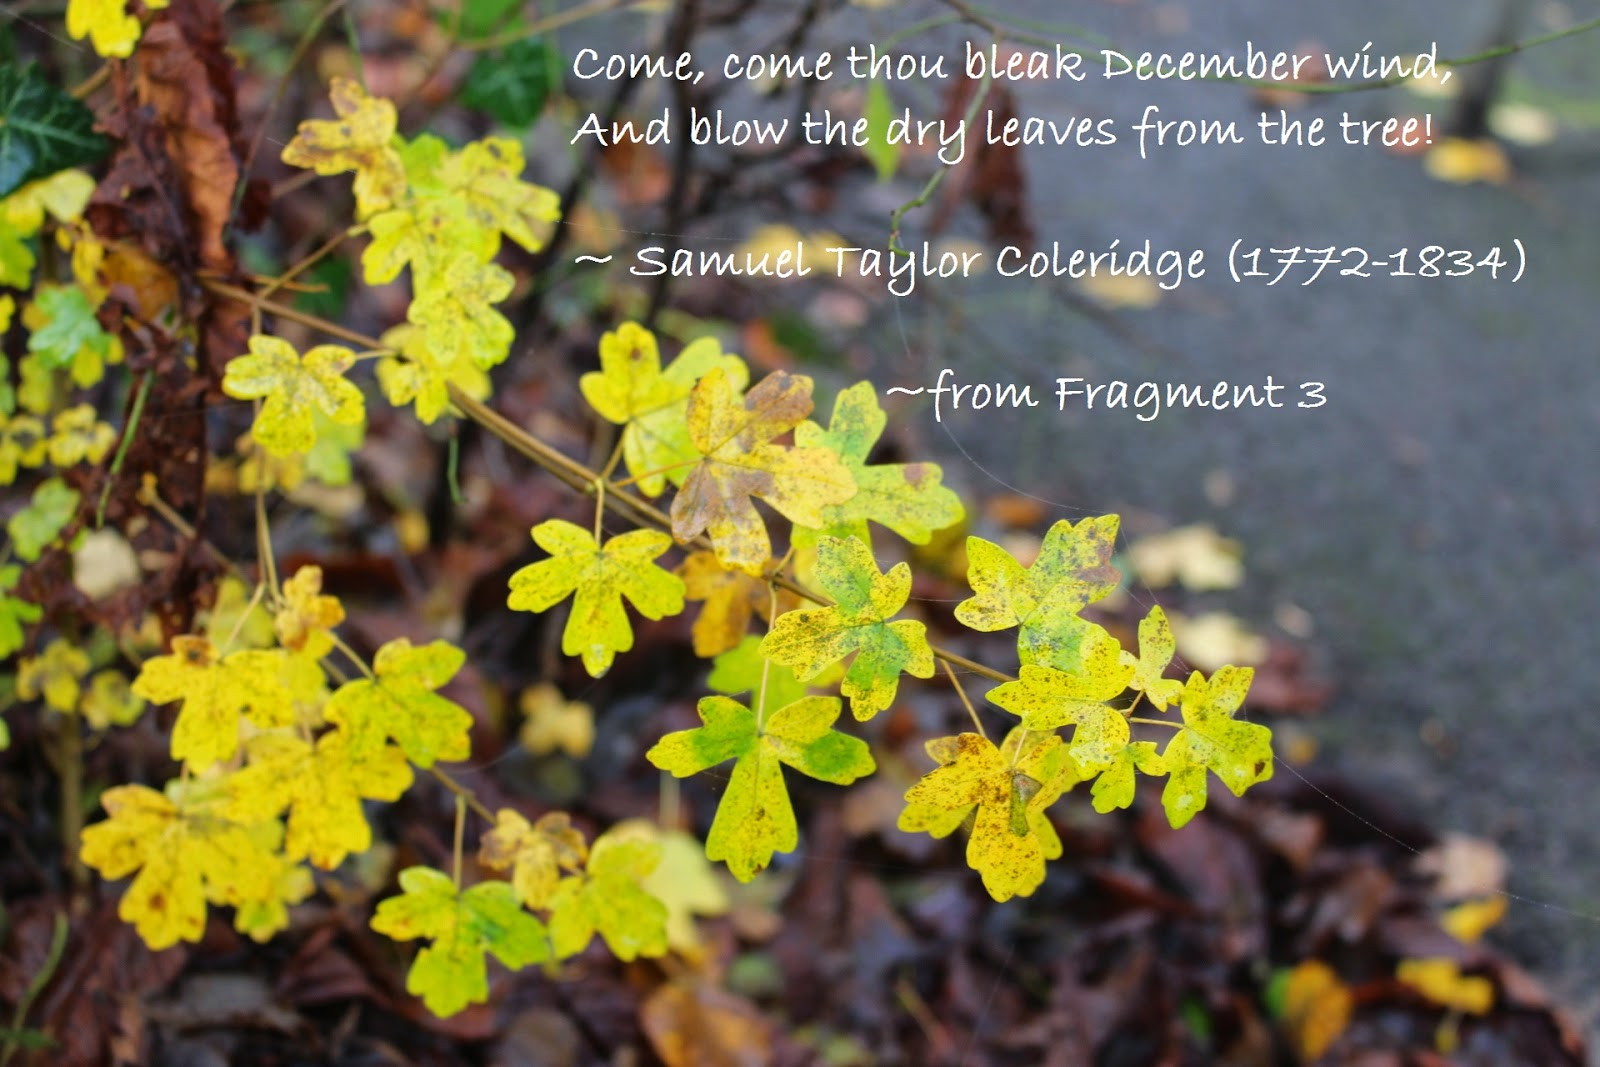 Many yellow leaves are still on the trees in my garden, December 2014